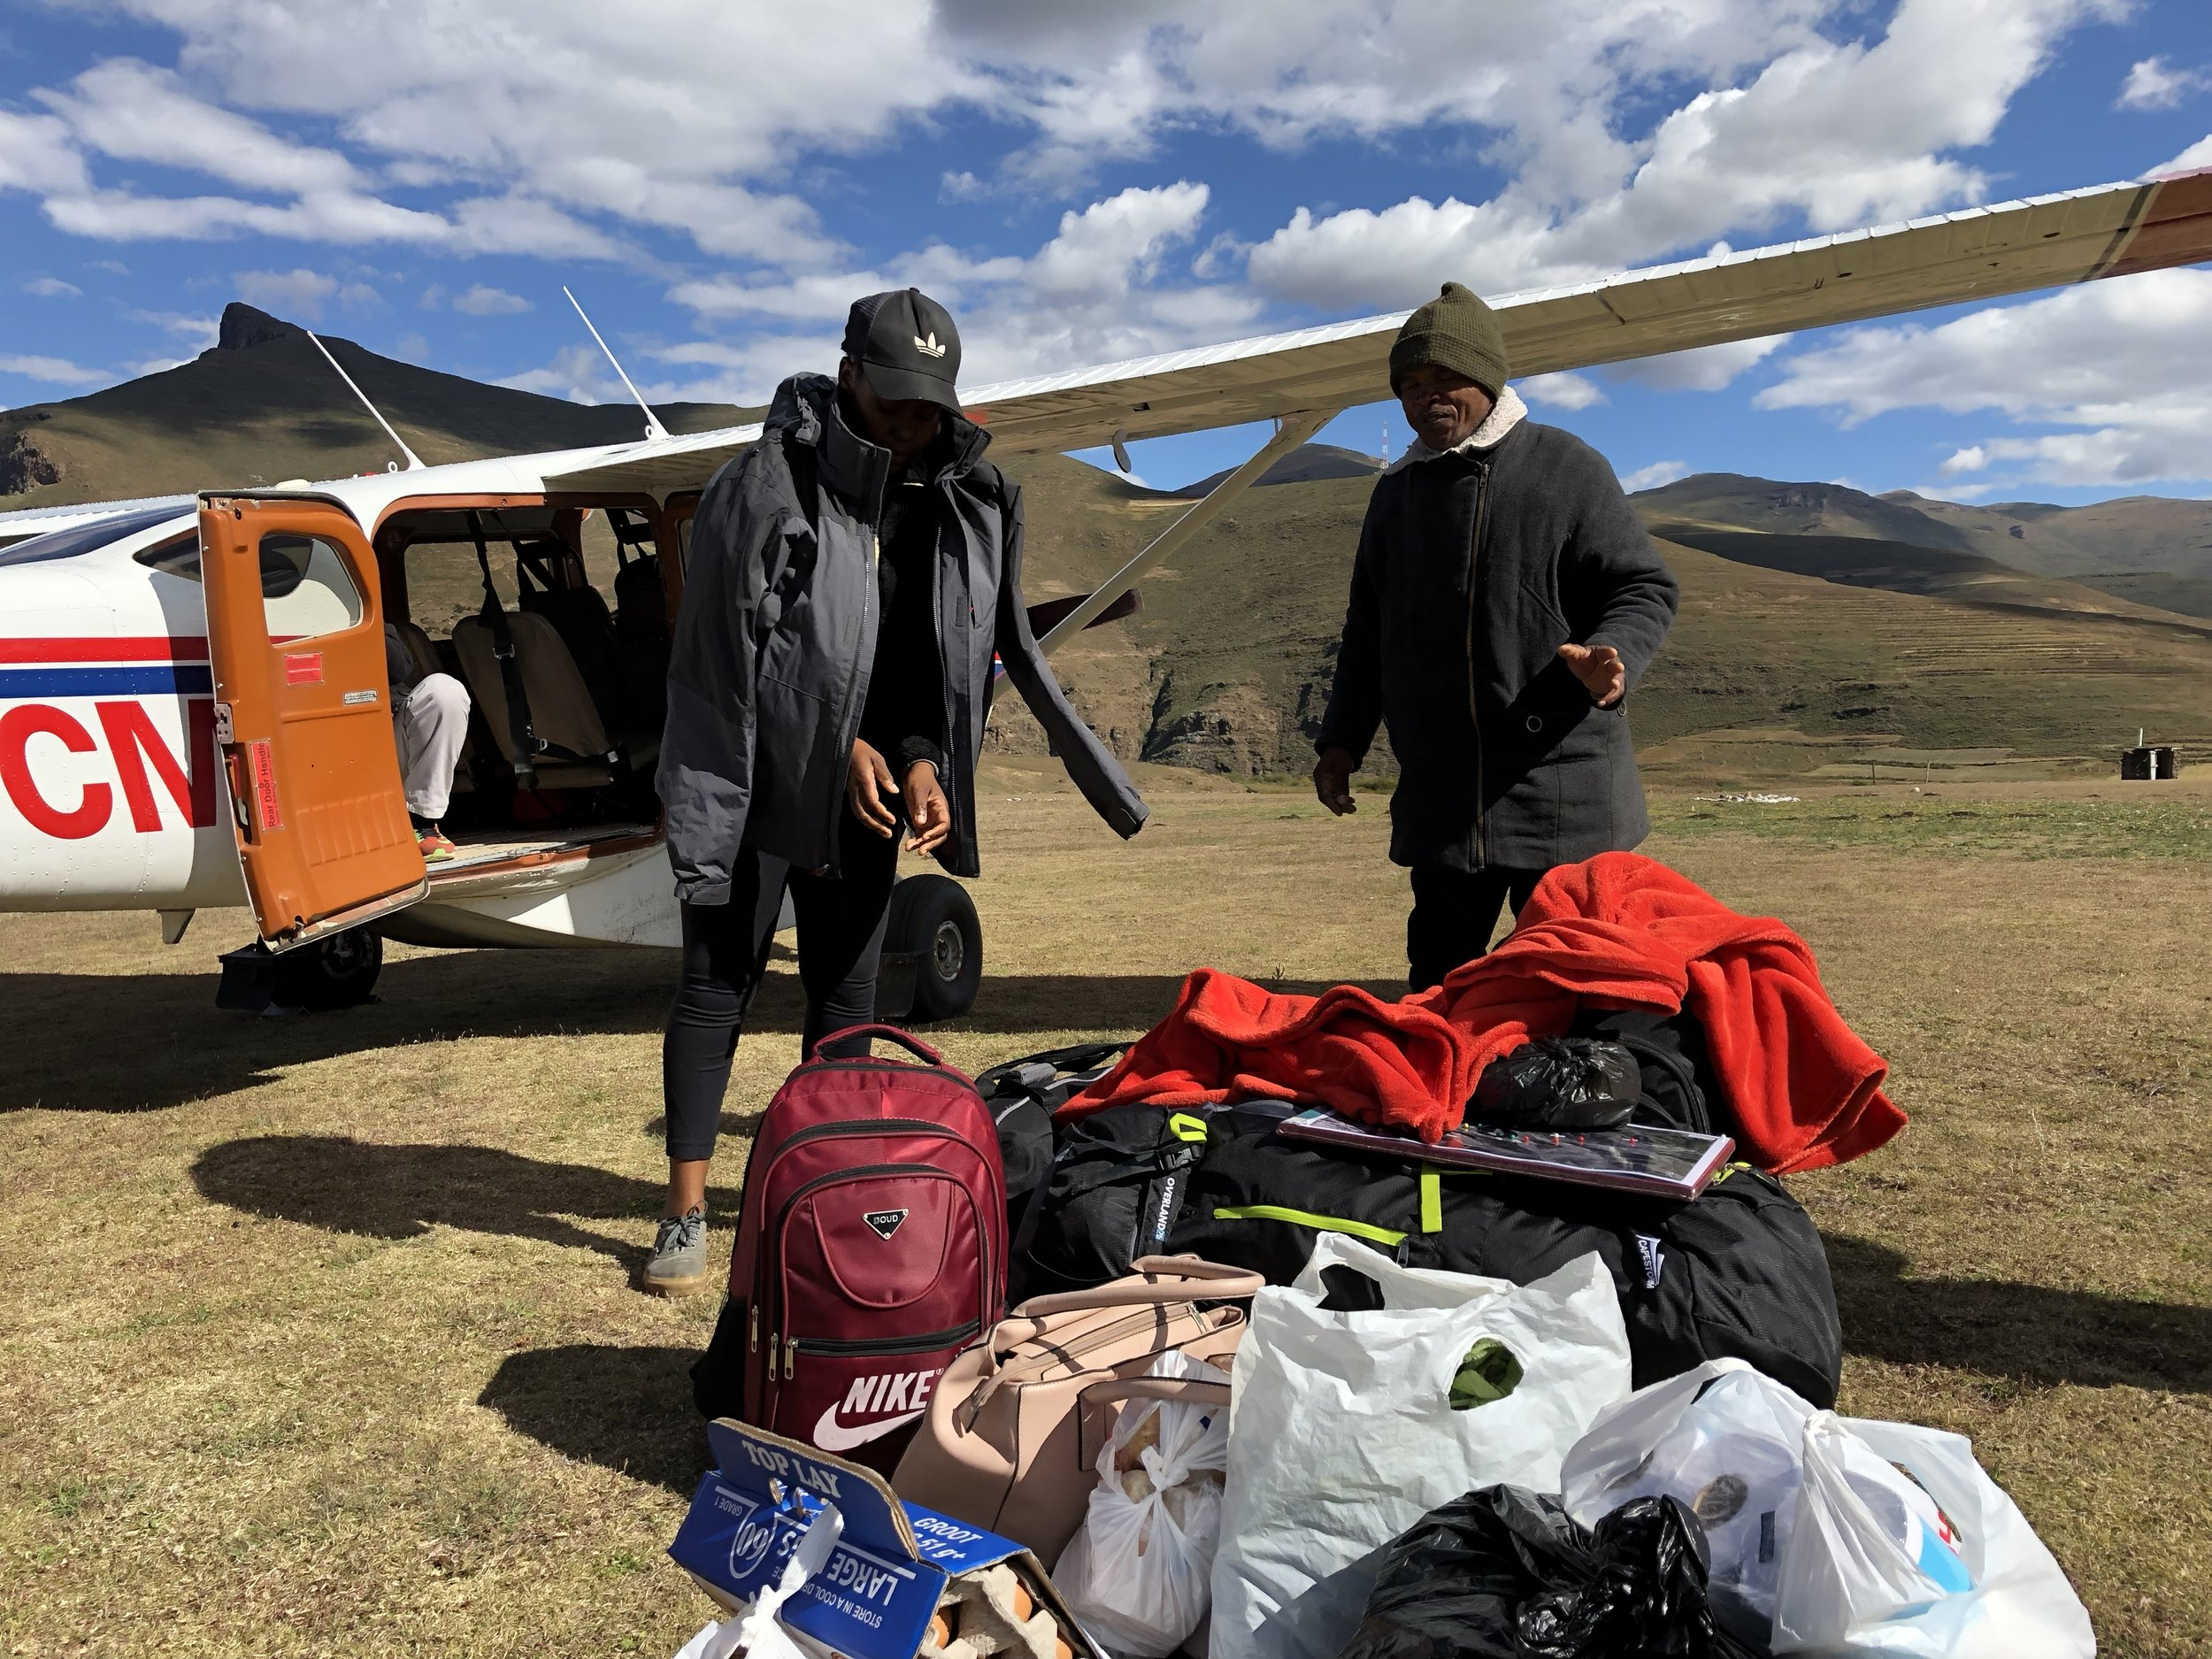 The pastors put on their jackets soon after landing!